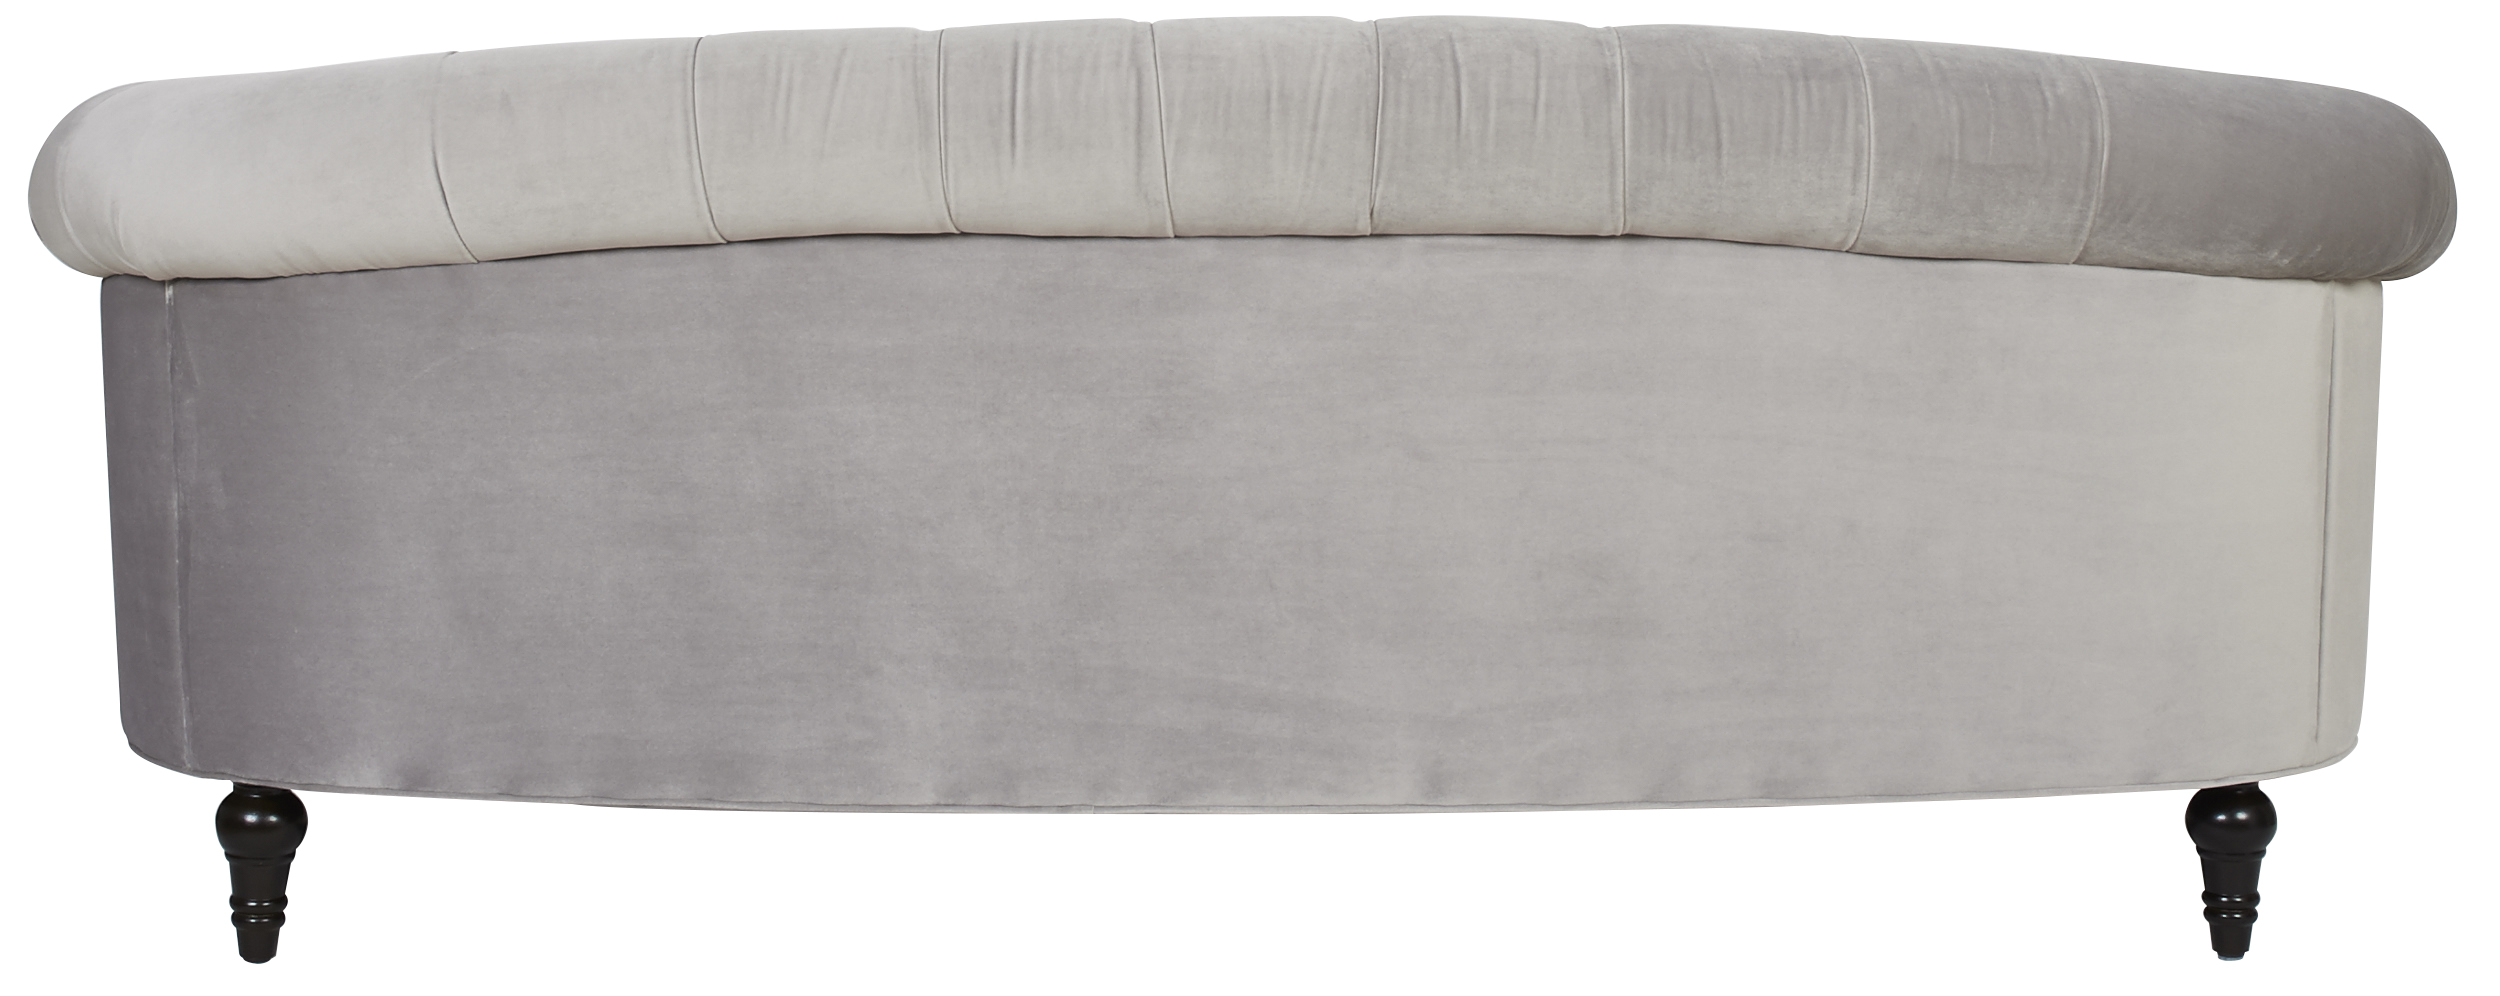 Chesterfield Sofa Velvet Fabric Fabric Wooden Chesterfield Velvet Sofa Opal Grey